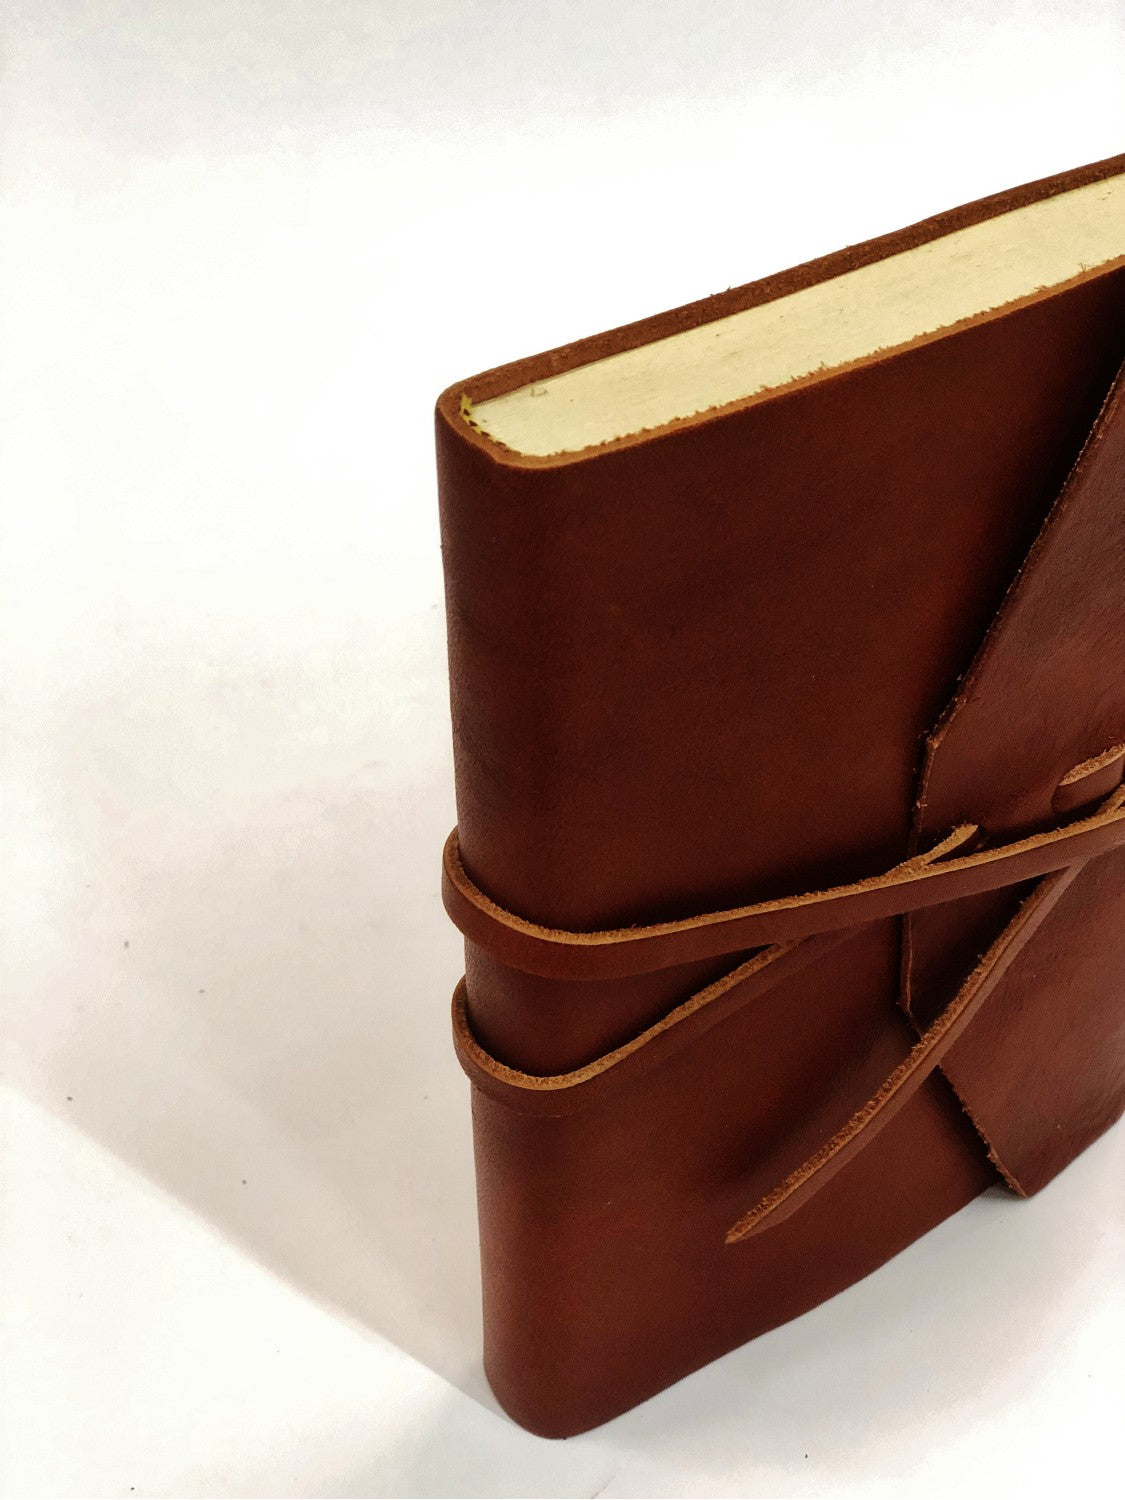 """Roma"" Journal - Handcrafted Leather Journal"